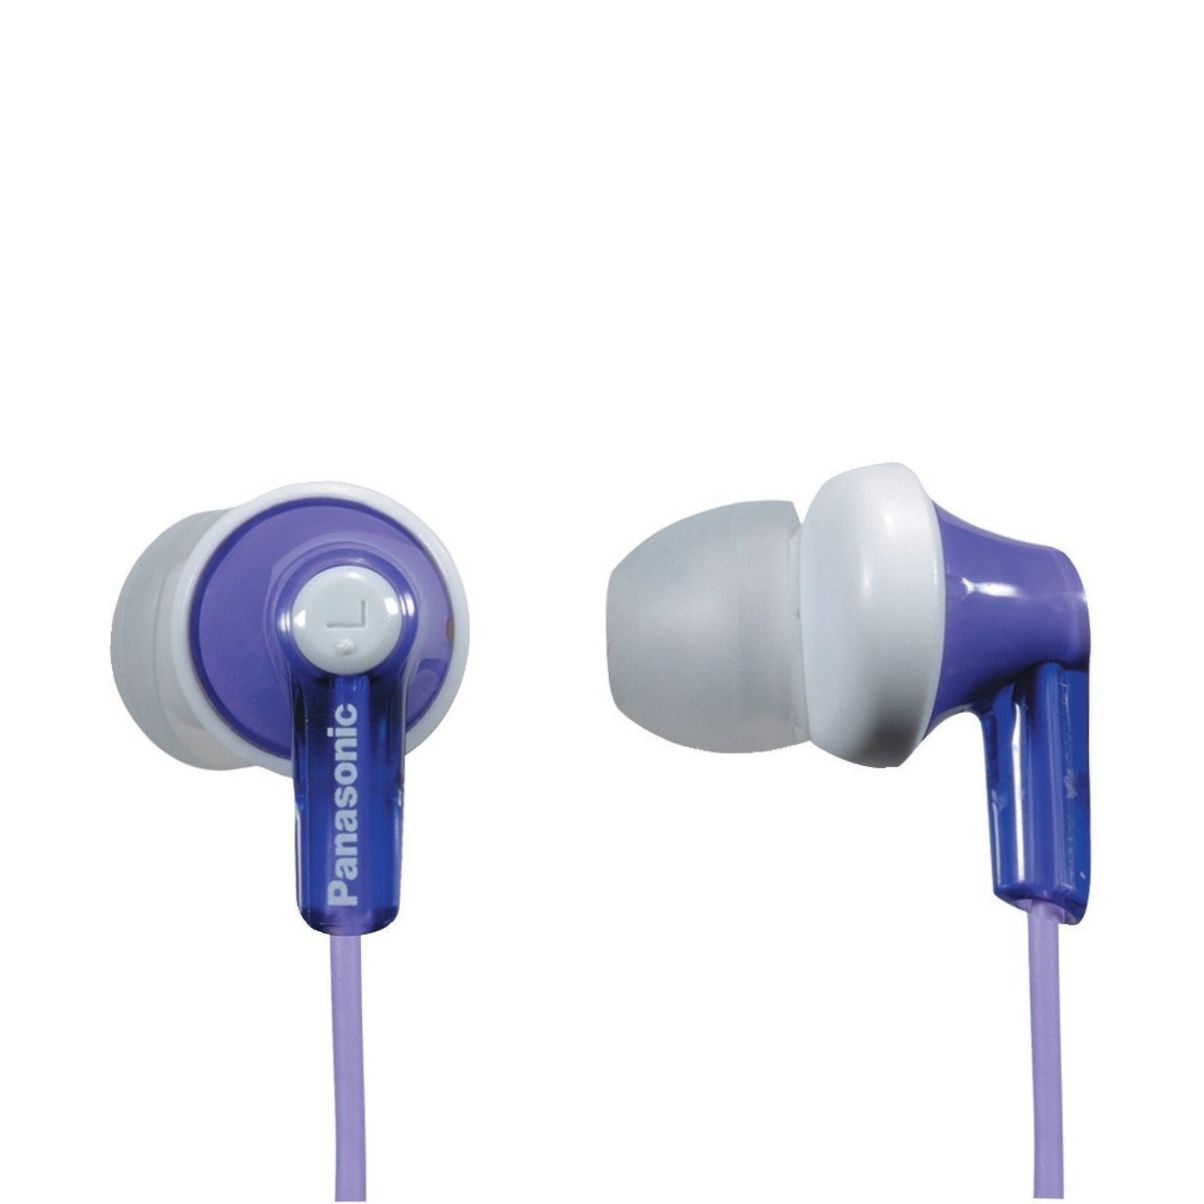 10 Best Cheap Earphones of 2018 - Quality Earbuds ...